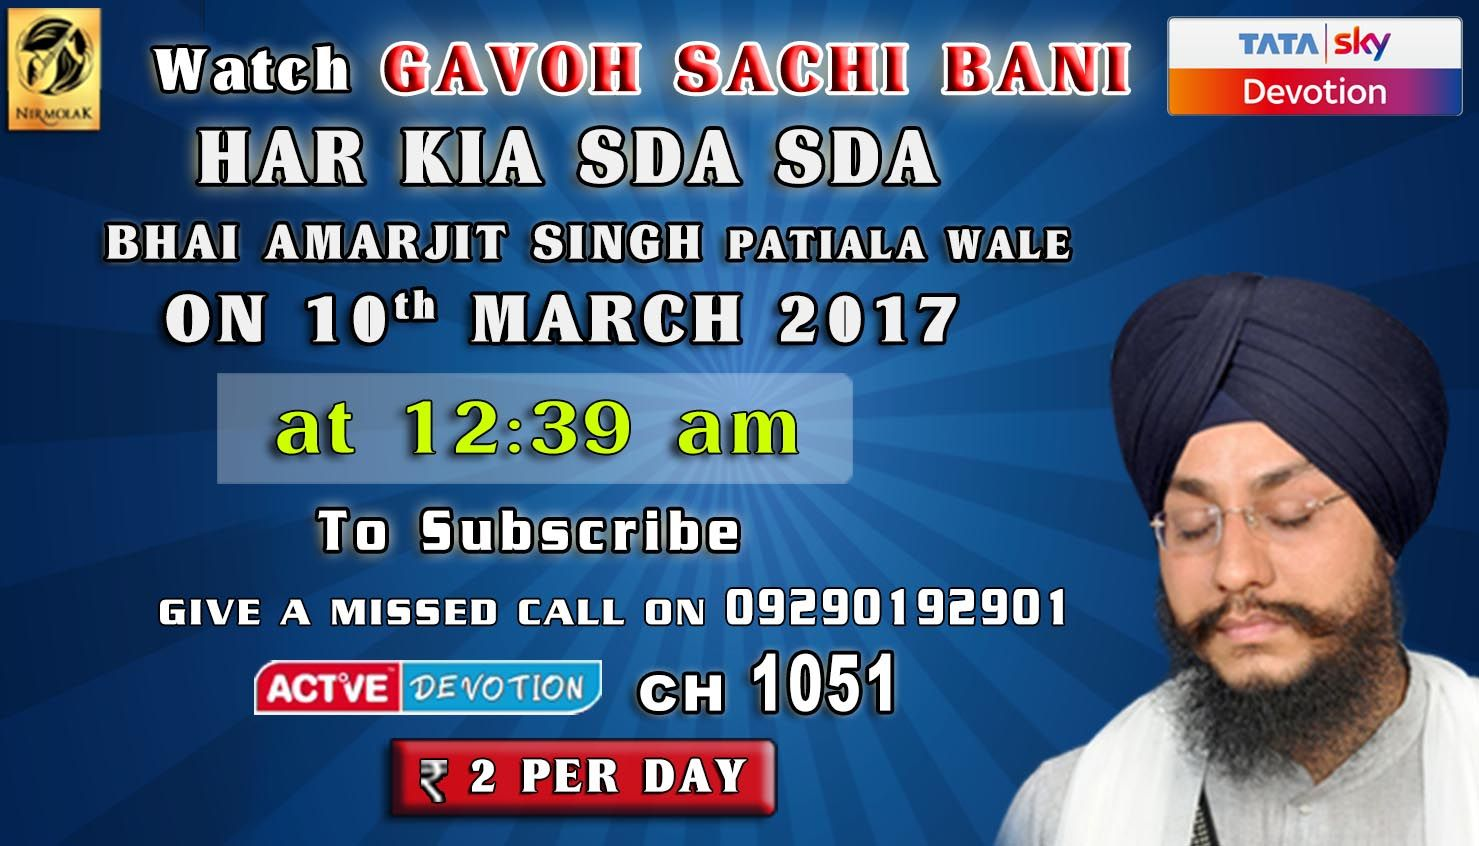 10th March Schedule of Tata Sky Active Devotion Gurbani Channel..  Watch Channel no 1051 on Tata Sky to listen to Gurbani 24X7.. Give A Missed Call On 09290192901 Facebook - https://www.facebook.com/nirmolakgurbaniofficial/ Twitter - https://twitter.com/GurbaniNirmolak Downlaod The Mobile Application For 24 x 7 free gurbani kirtan - Playstore - https://play.google.com/store/apps/details?id=com.init.nirmolak&hl=en App Store - https://itunes.apple.com/us/app/nirmolak-gurbani/id1084234941?mt=8